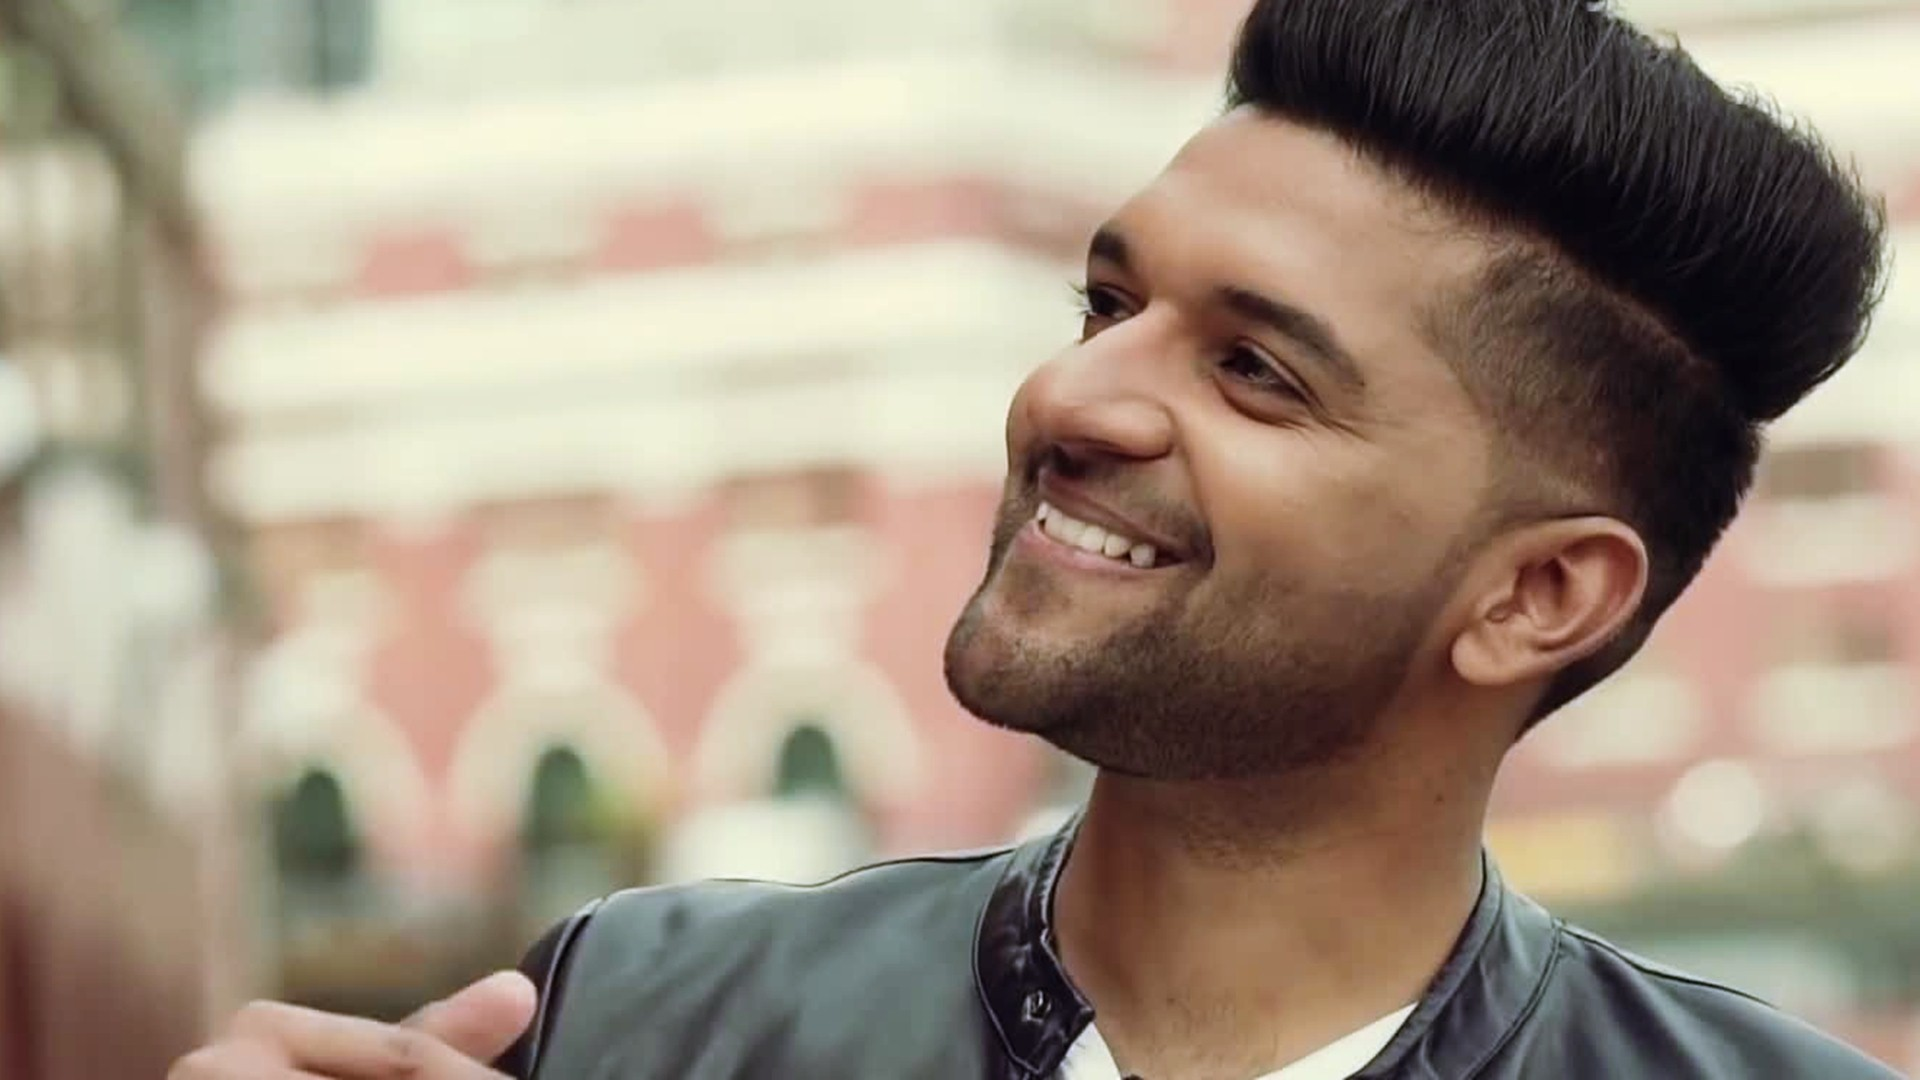 Guru Randhawa Hair Cutting 700x394 Download Hd Wallpaper Wallpapertip